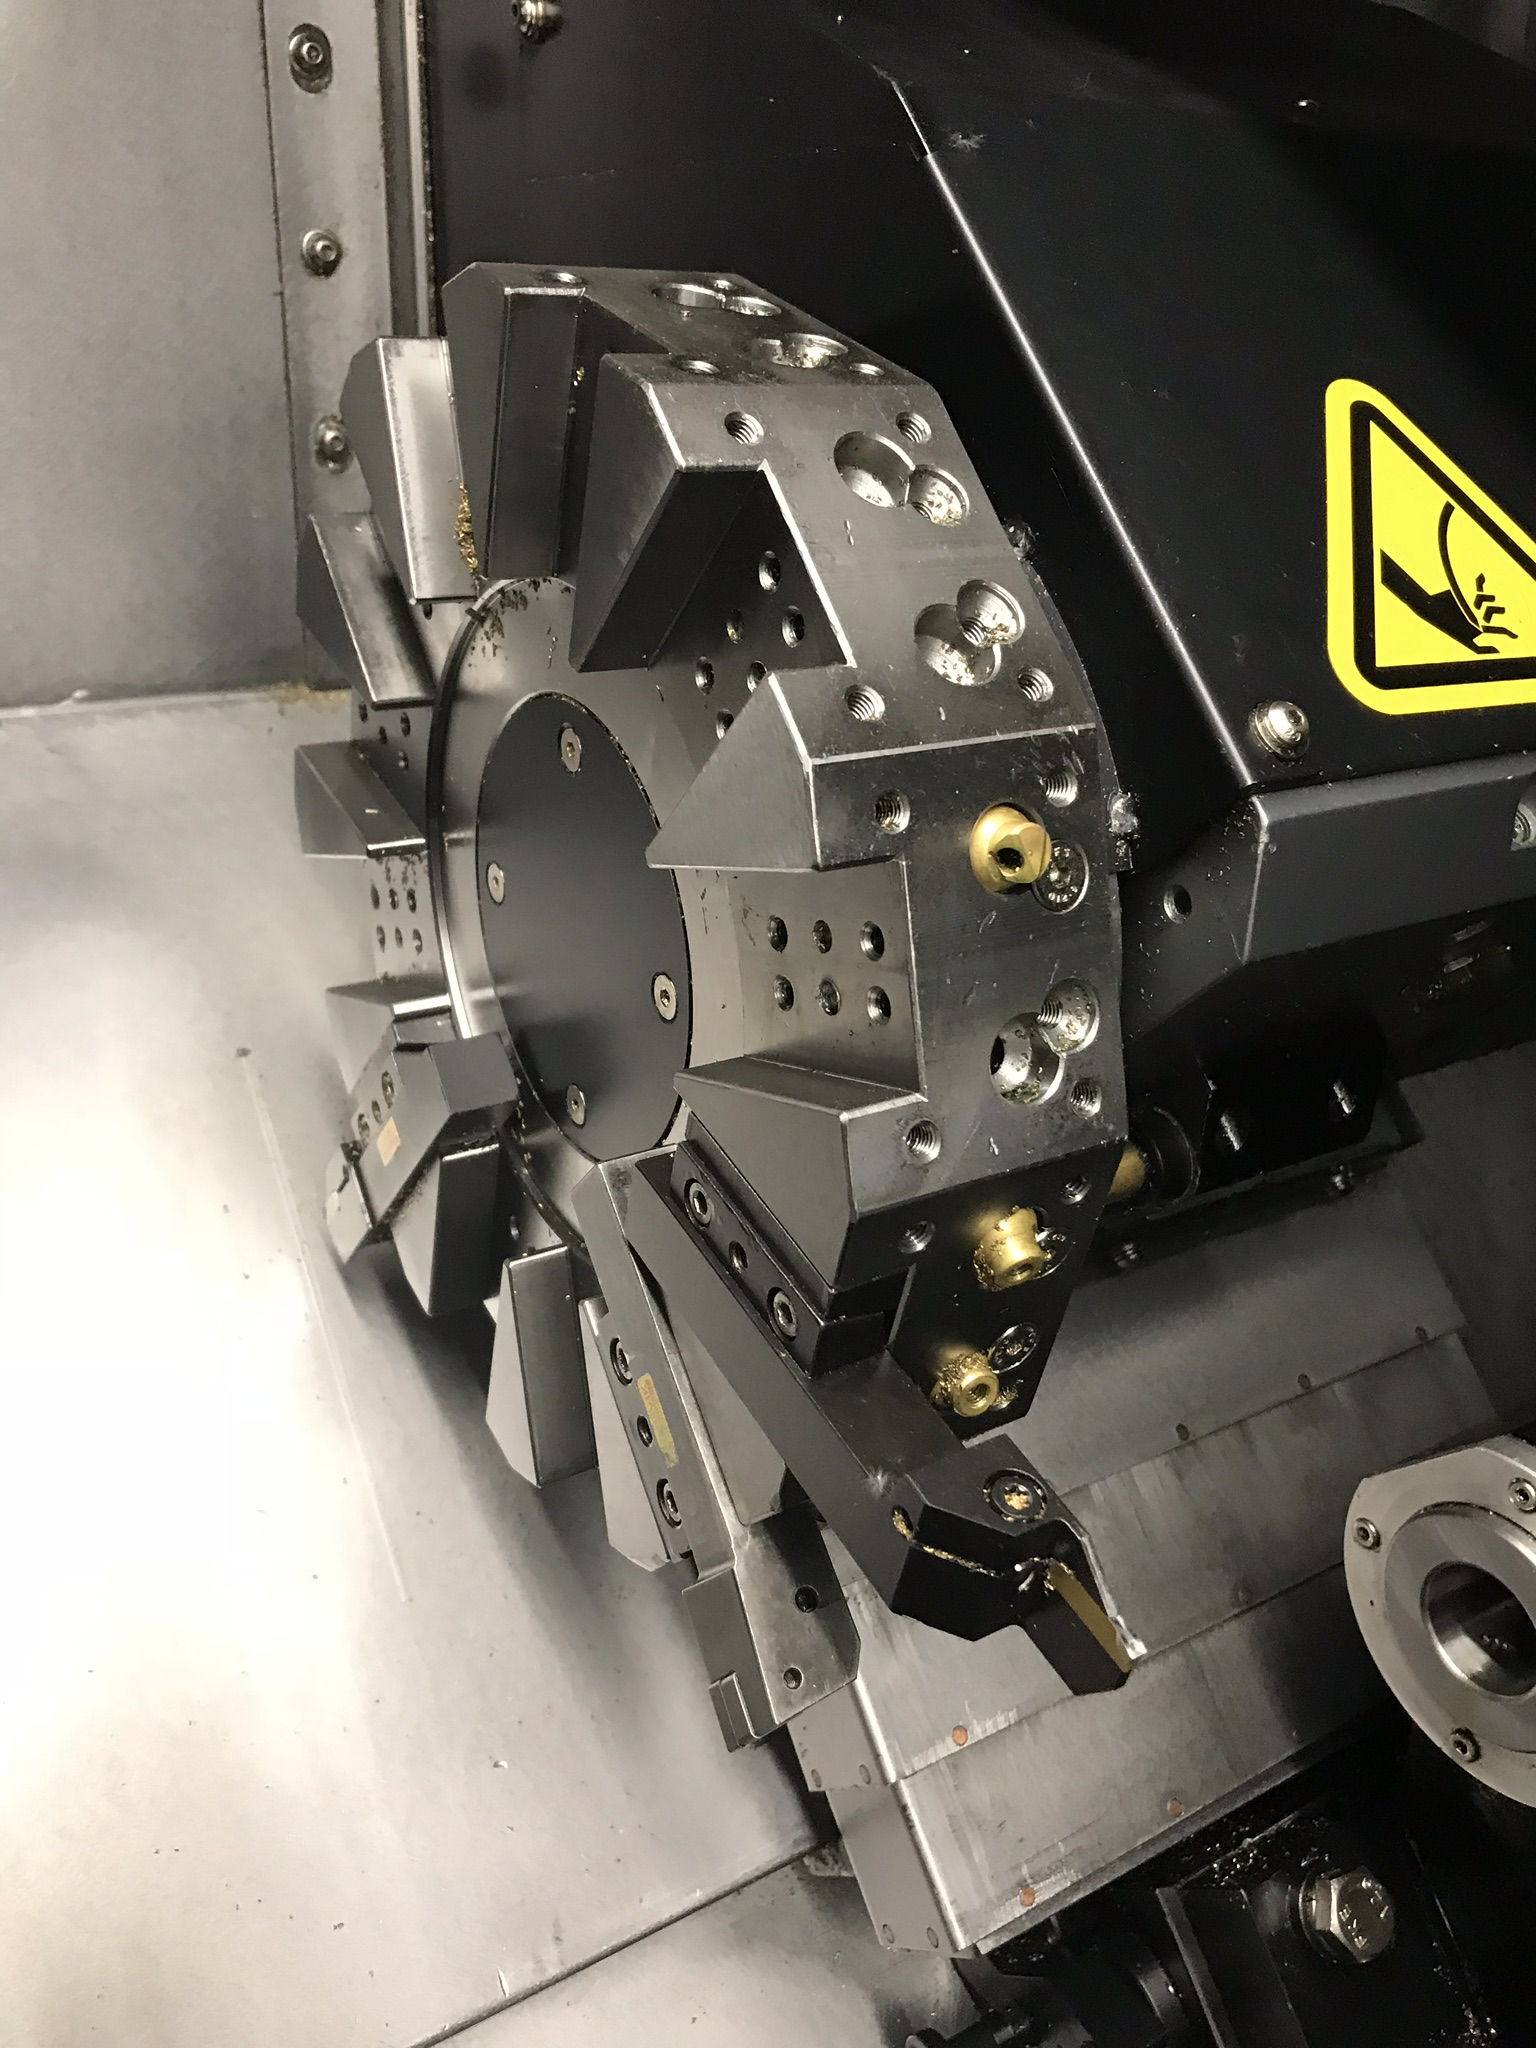 Hurco TM-6i CNC Lathe with HB65-1.2 Barfeed, Rigid Tap, Renishaw Presetter, Chip Conv, 400 Hours! - Image 5 of 16